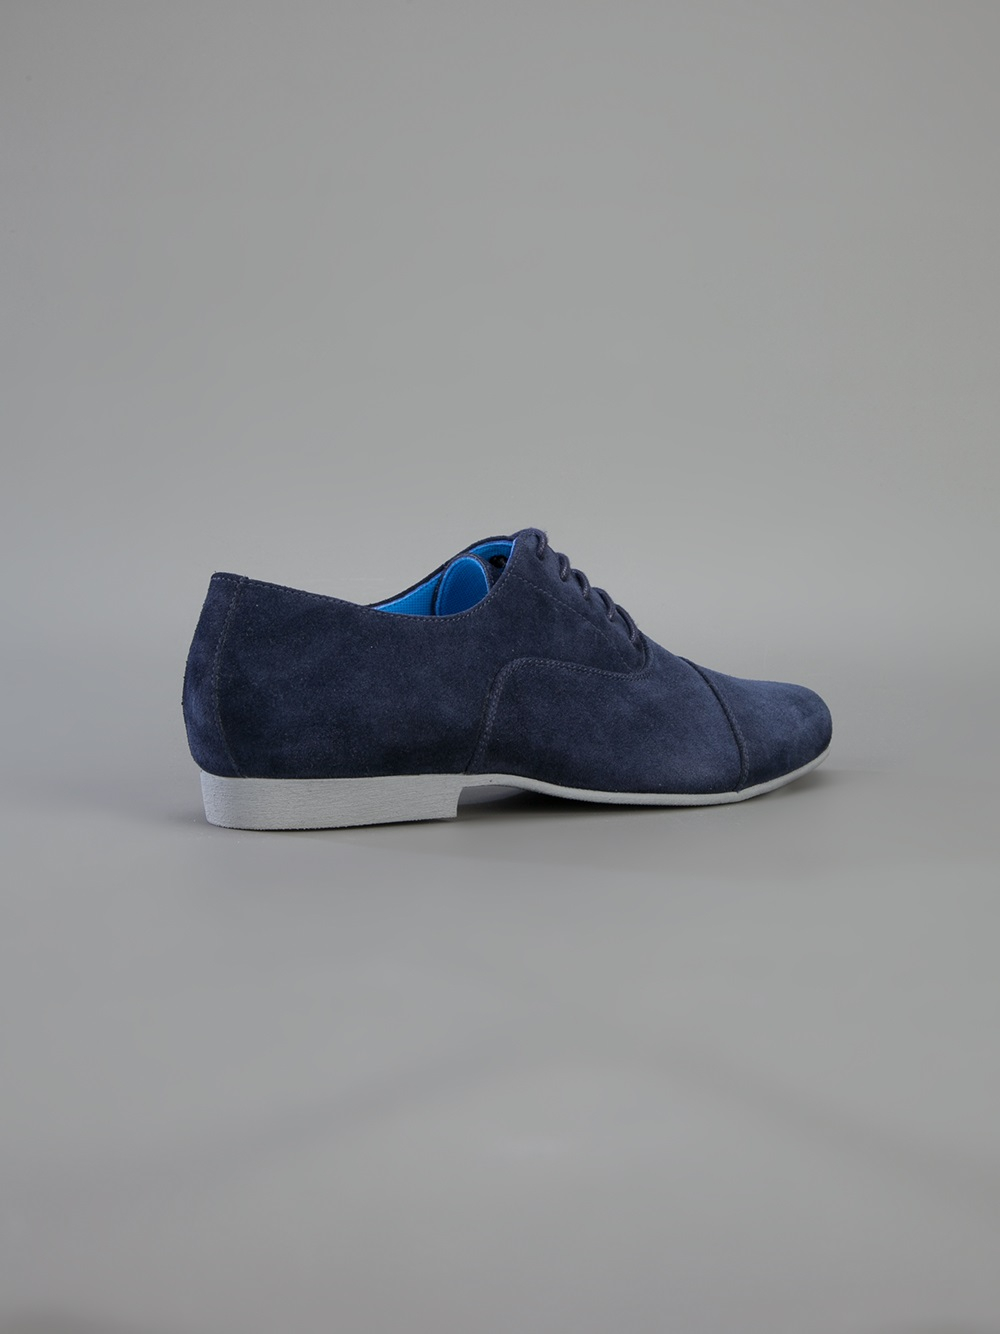 Swear U0026#39;jimmy 1u0026#39; Oxford Shoes In Blue For Men (navy) | Lyst